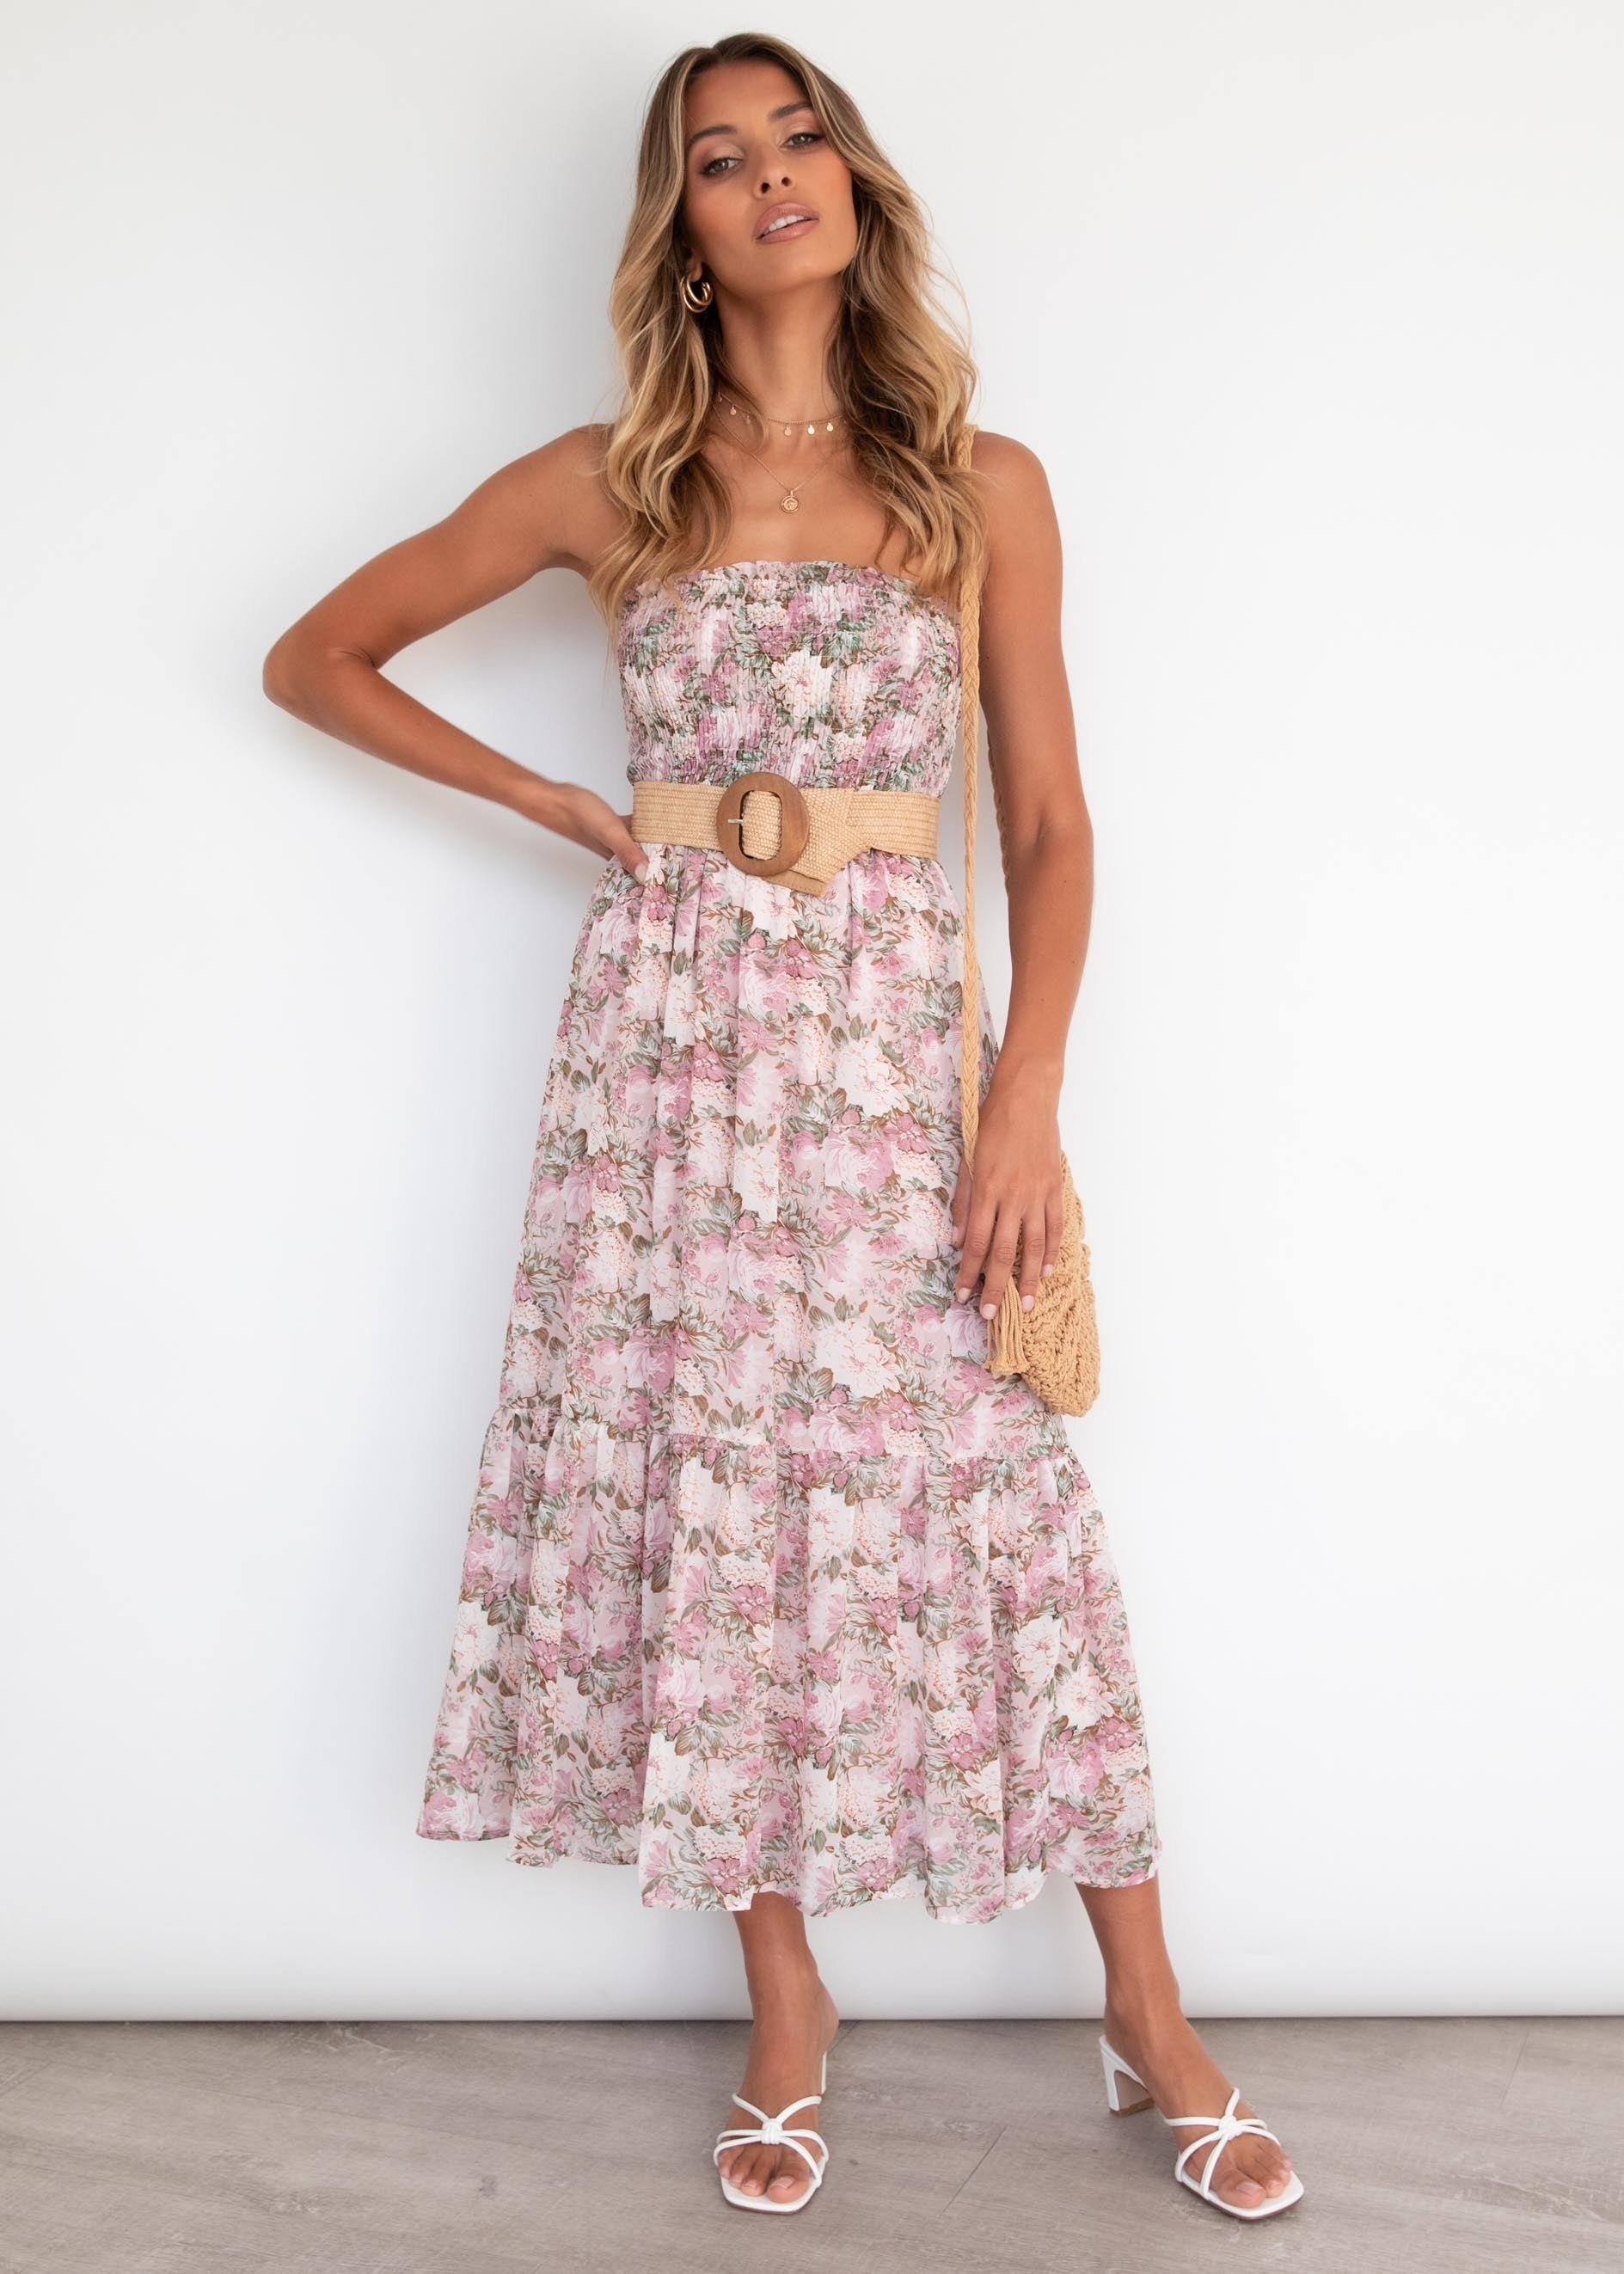 Avalee Strapless Midi Dress - Blush Garden